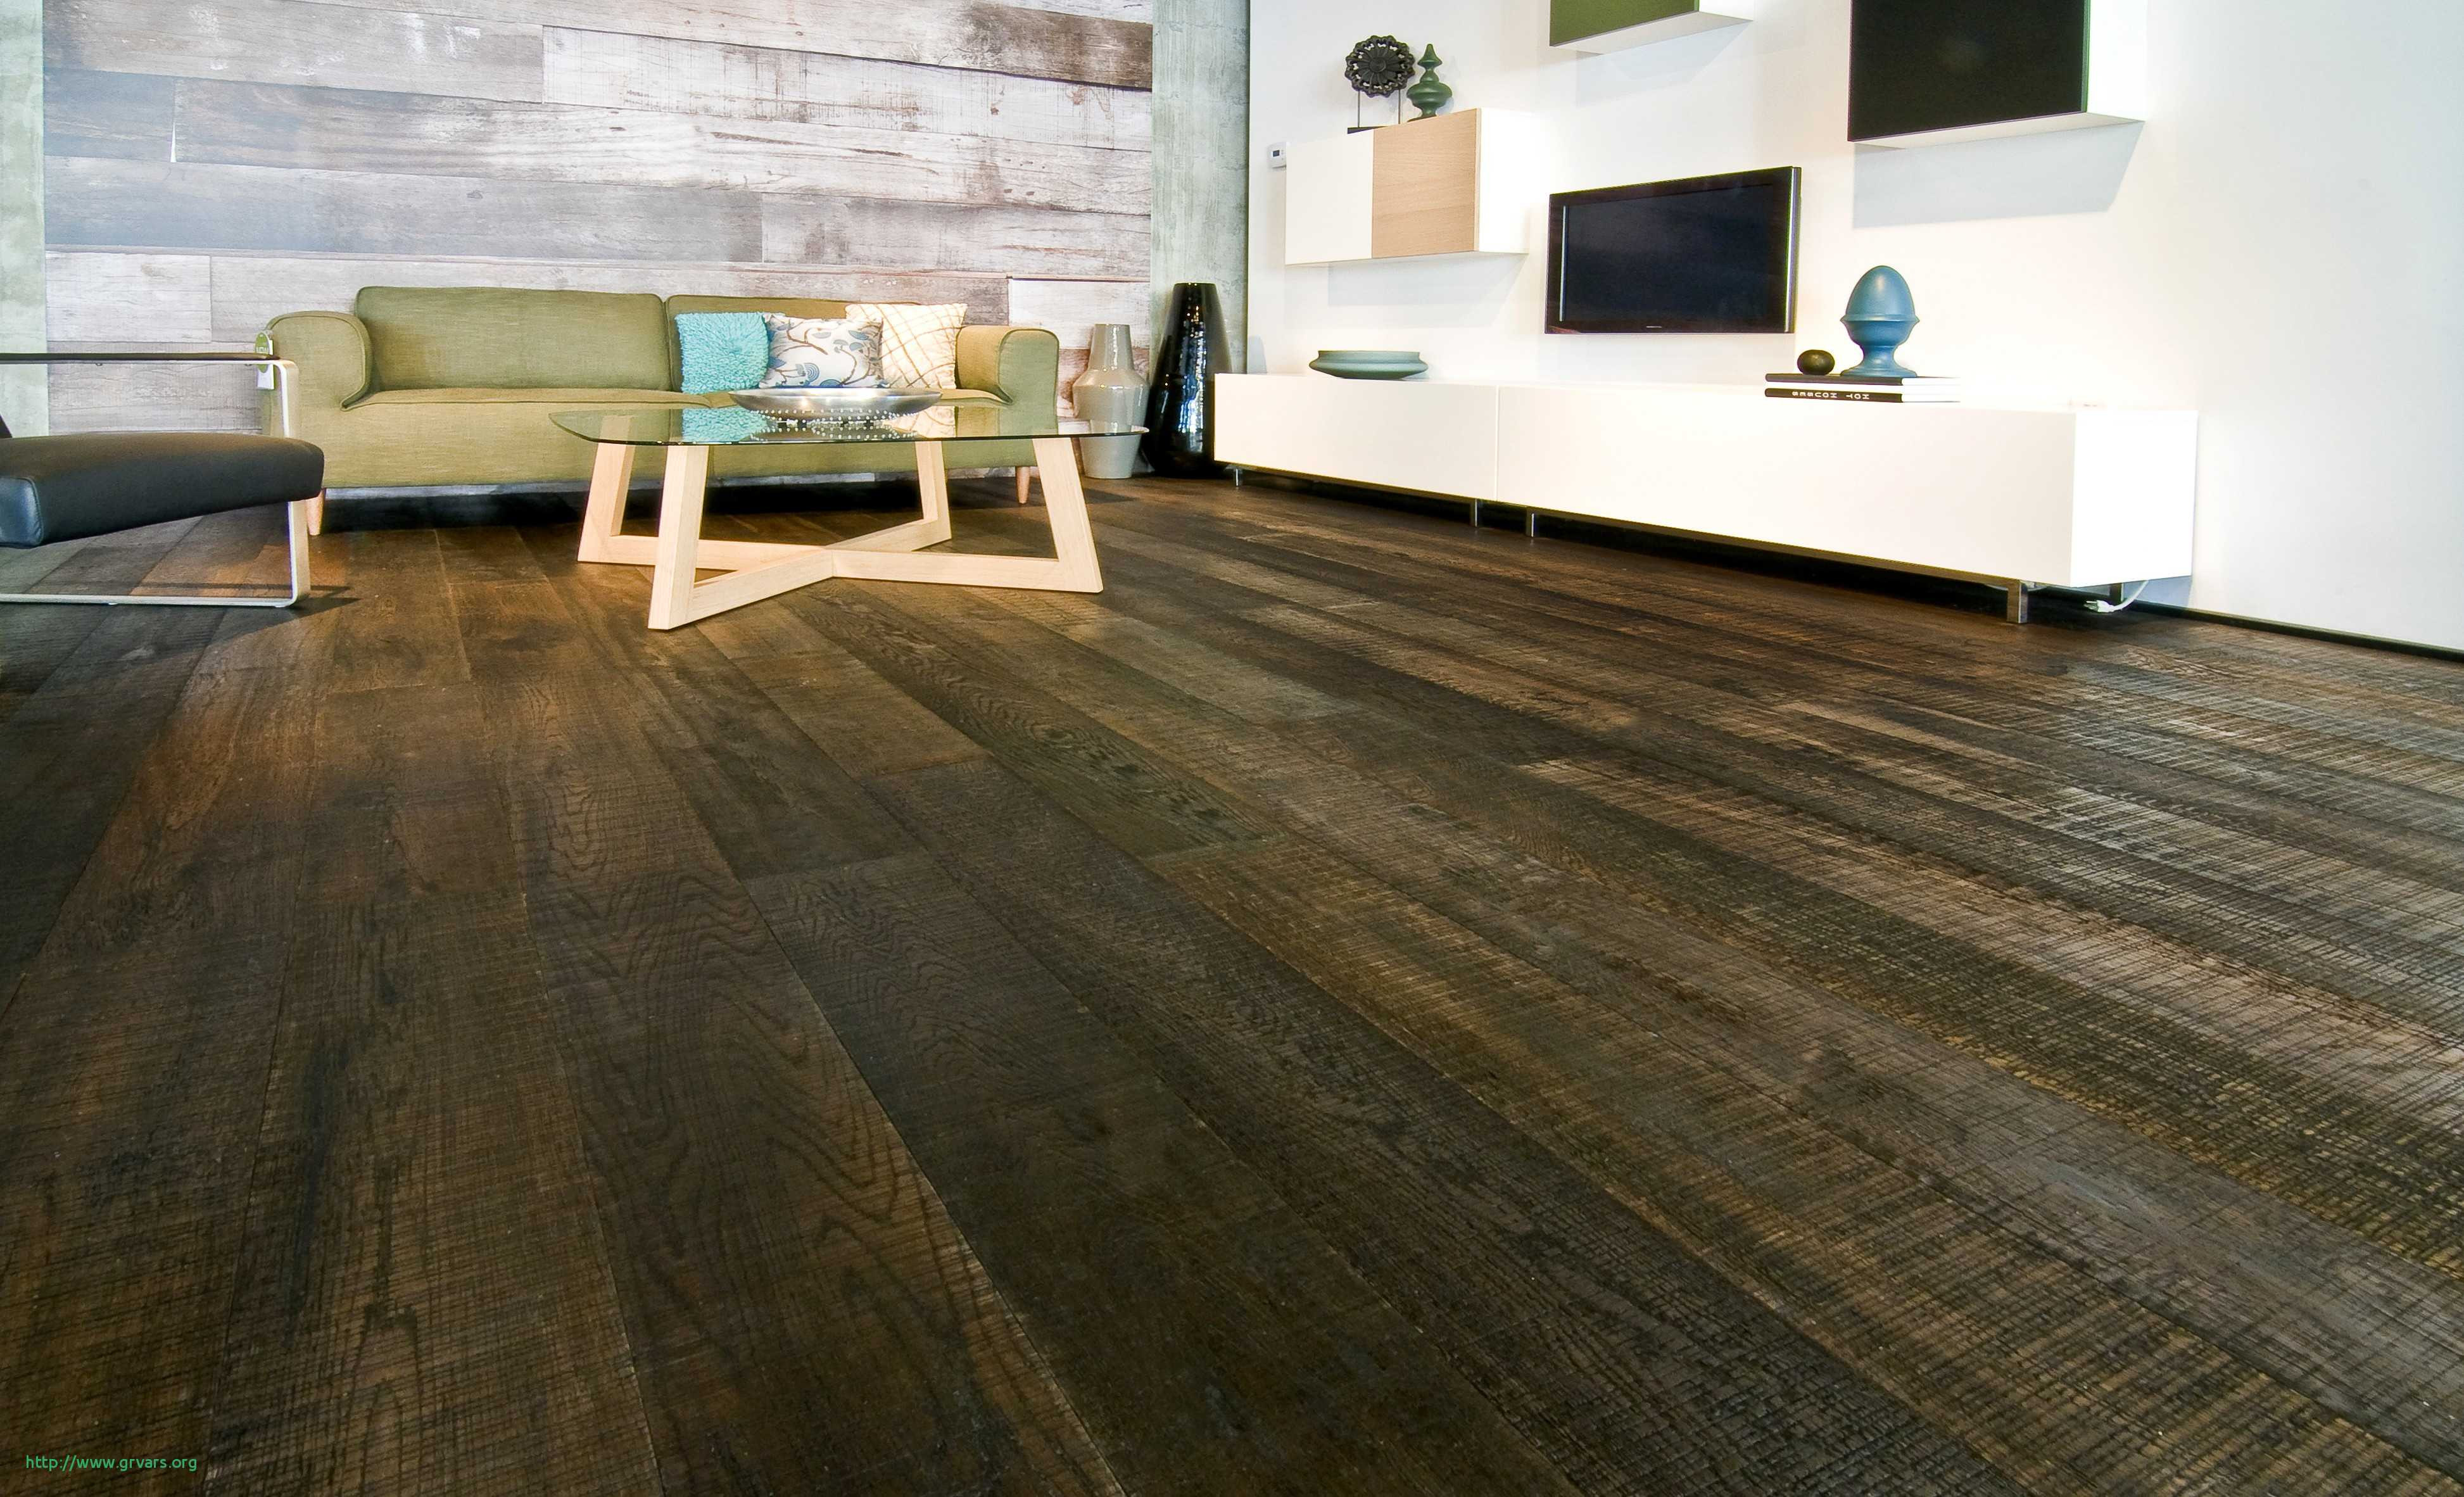 what width hardwood floor should i get of 20 impressionnant cheapest place to buy hardwood flooring ideas blog in acacia wood flooring where to buy hardwood flooring inspirational 0d grace place barnegat